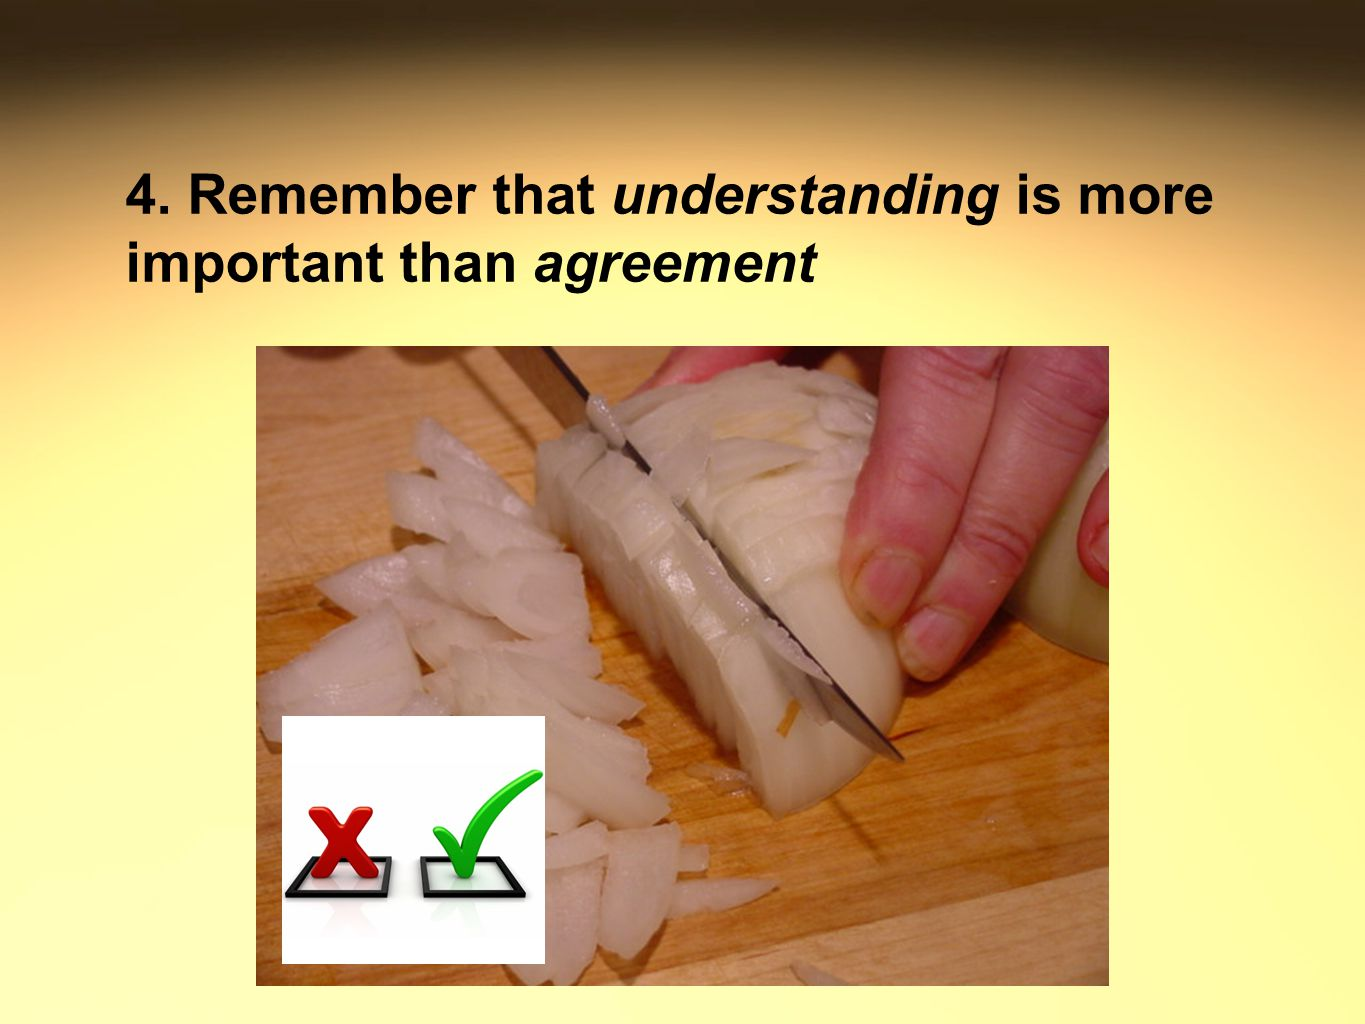 4. Remember that understanding is more important than agreement